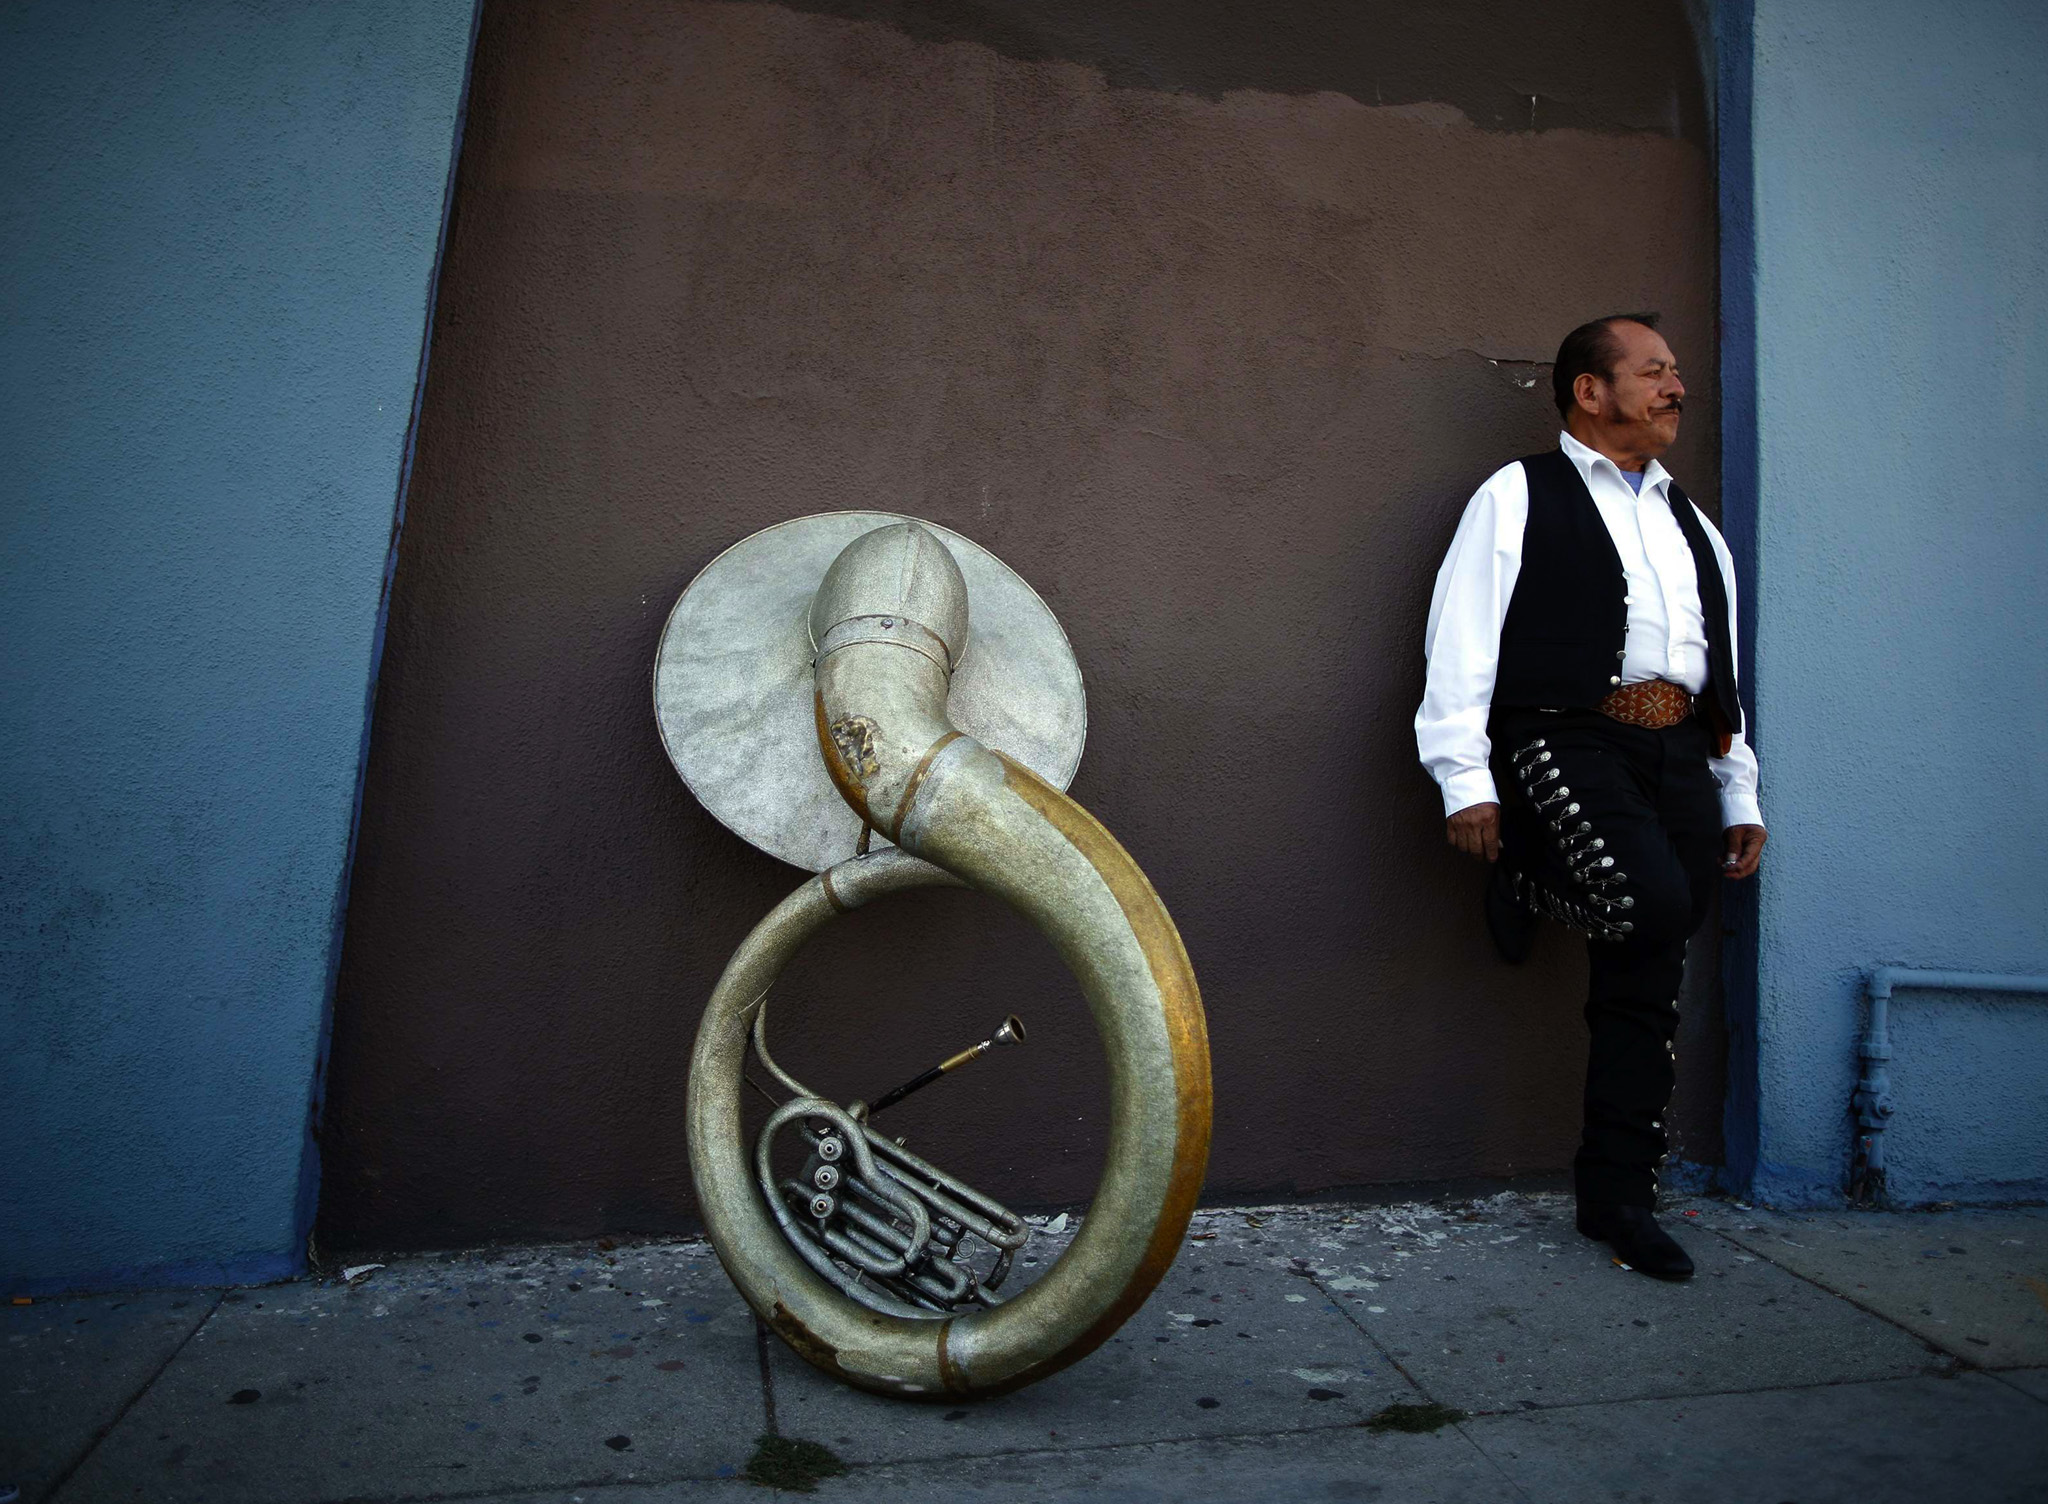 Mariachi musician Moises Rivera, 60, waits for a gig in the Boyle Heights area of Los Angeles, home to many Mexican and Central American migrants, in California.